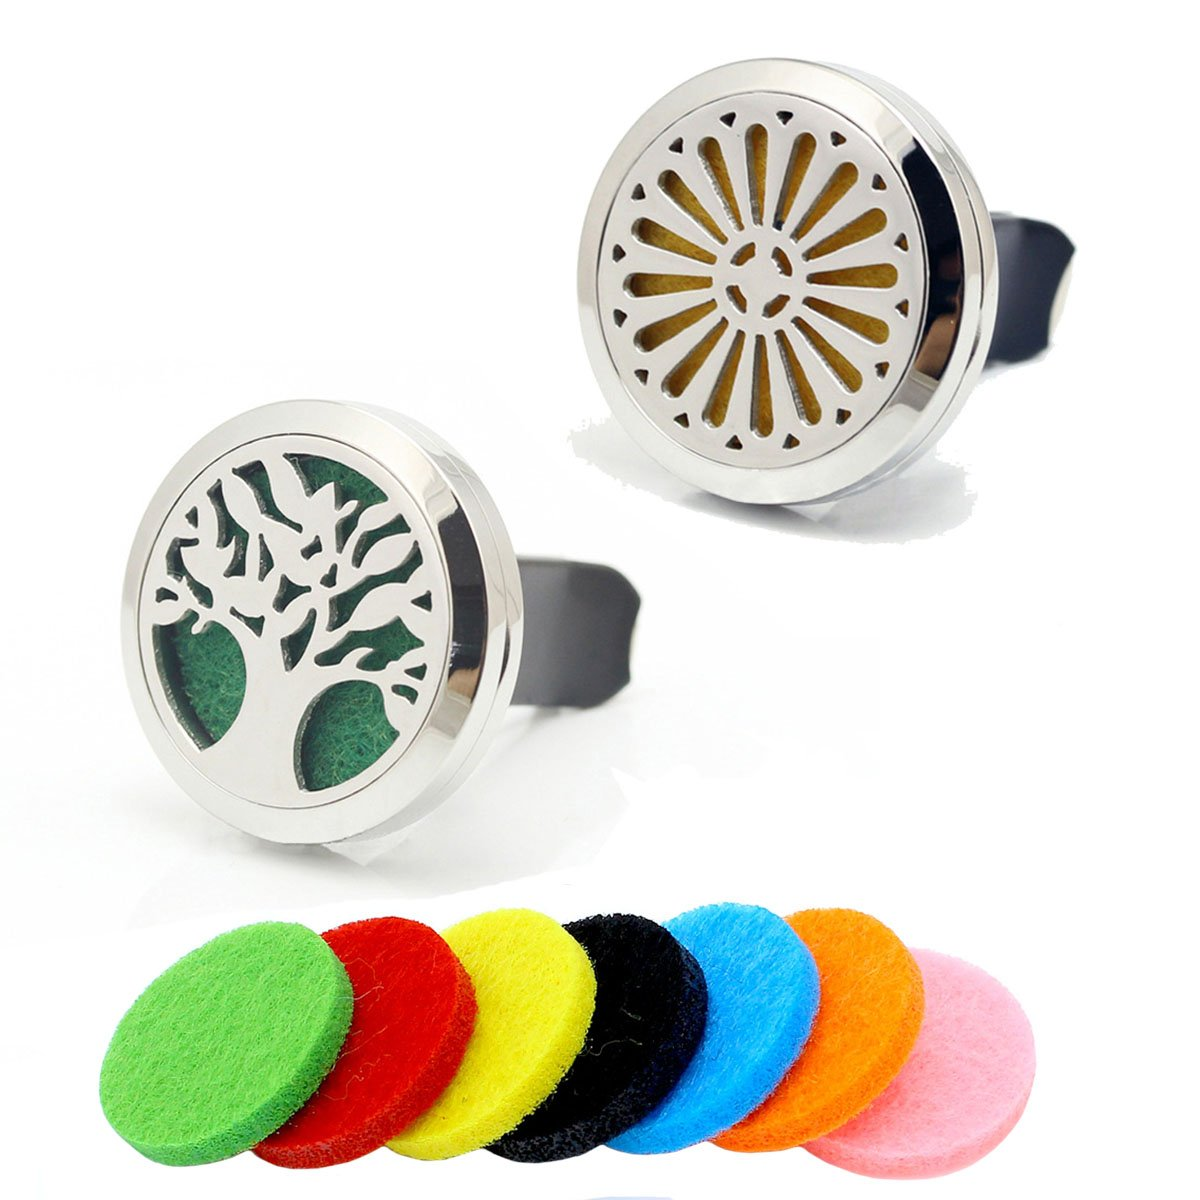 2pcs (Tree of Life + Flower) Stainless Steel Vent Clip Car Locket Aromatherapy Essential Oil Diffuser